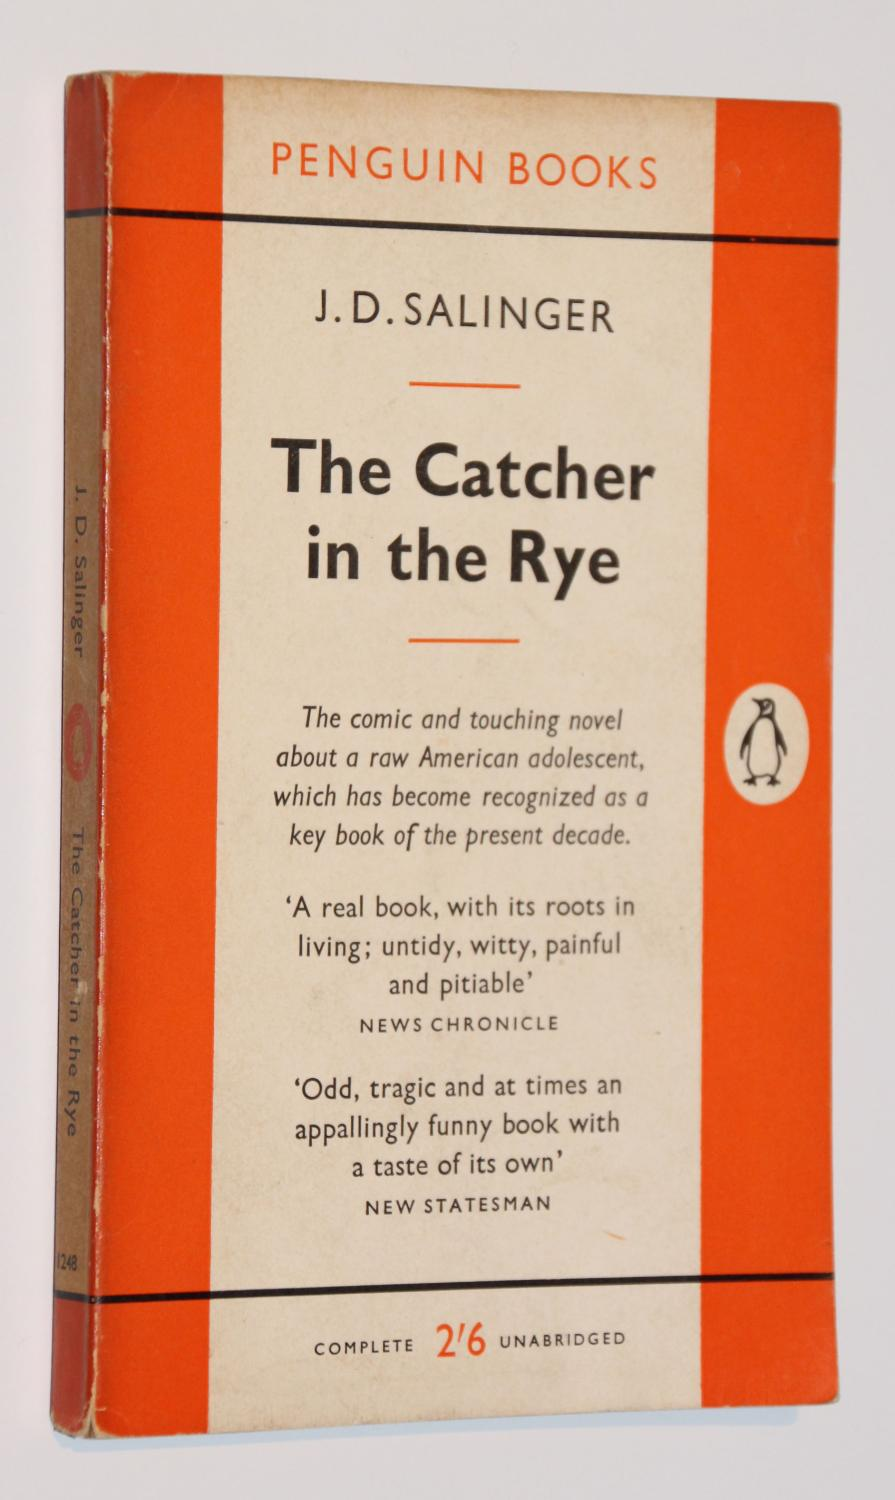 catcher in the rye book notes essay - the catcher in the rye - symbolism in the catcher in the rye, jd salinger uses different examples of symbolism throughout the novel to let the reader into the thoughts of holden caulfield three major examples of his symbolism are the ducks with the frozen pond, jane gallagher, and the museum of natural history.